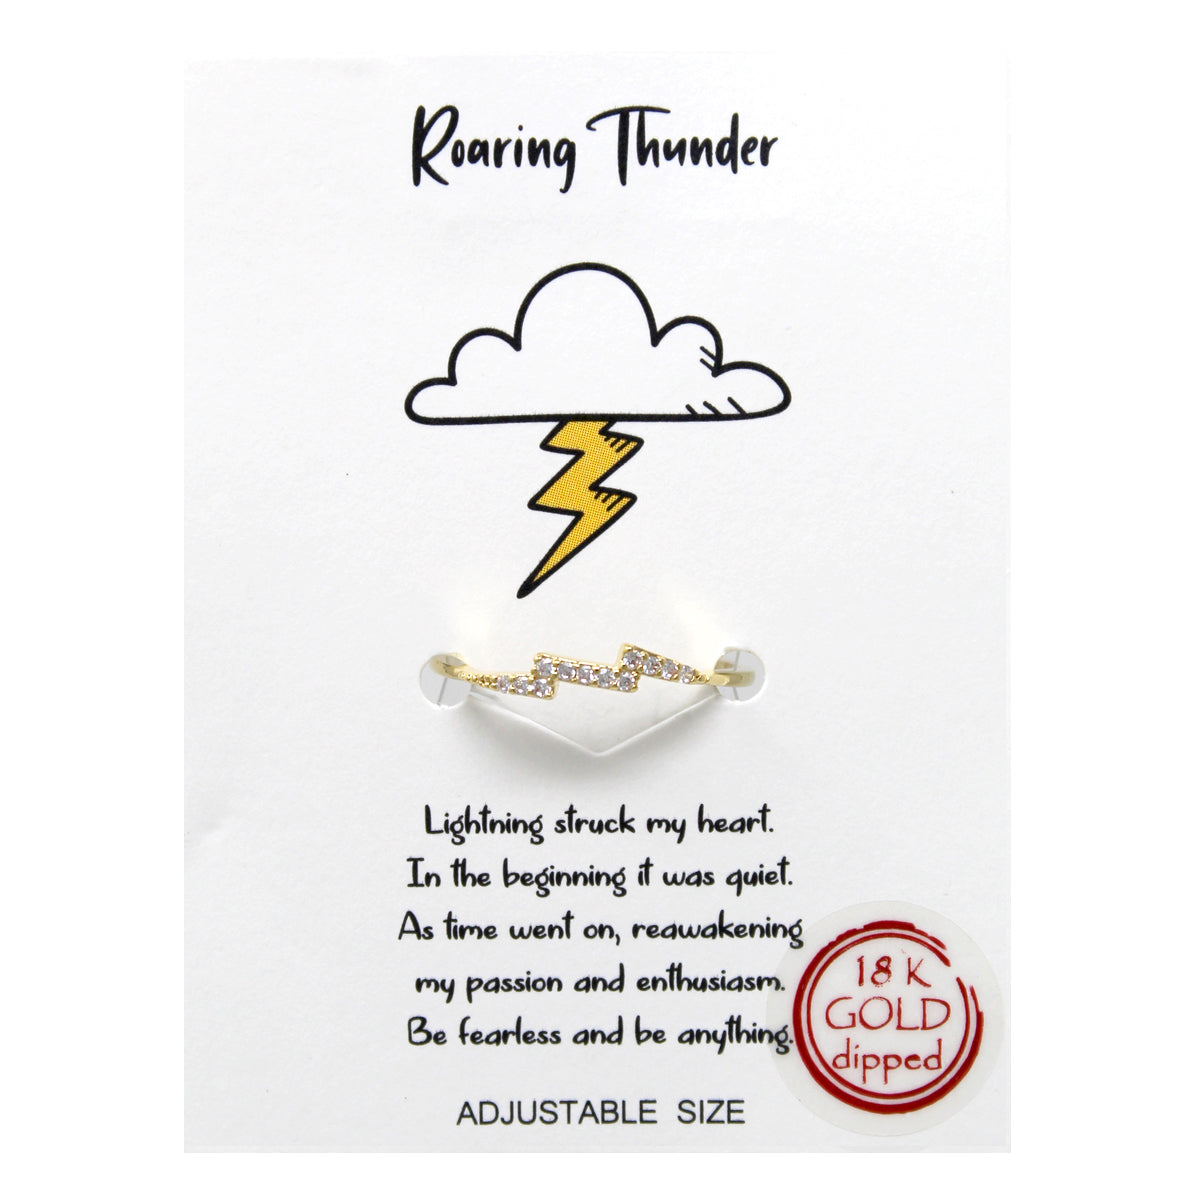 Tell Your Story: Roaring Thunder CZ Pave Adjustable Ring